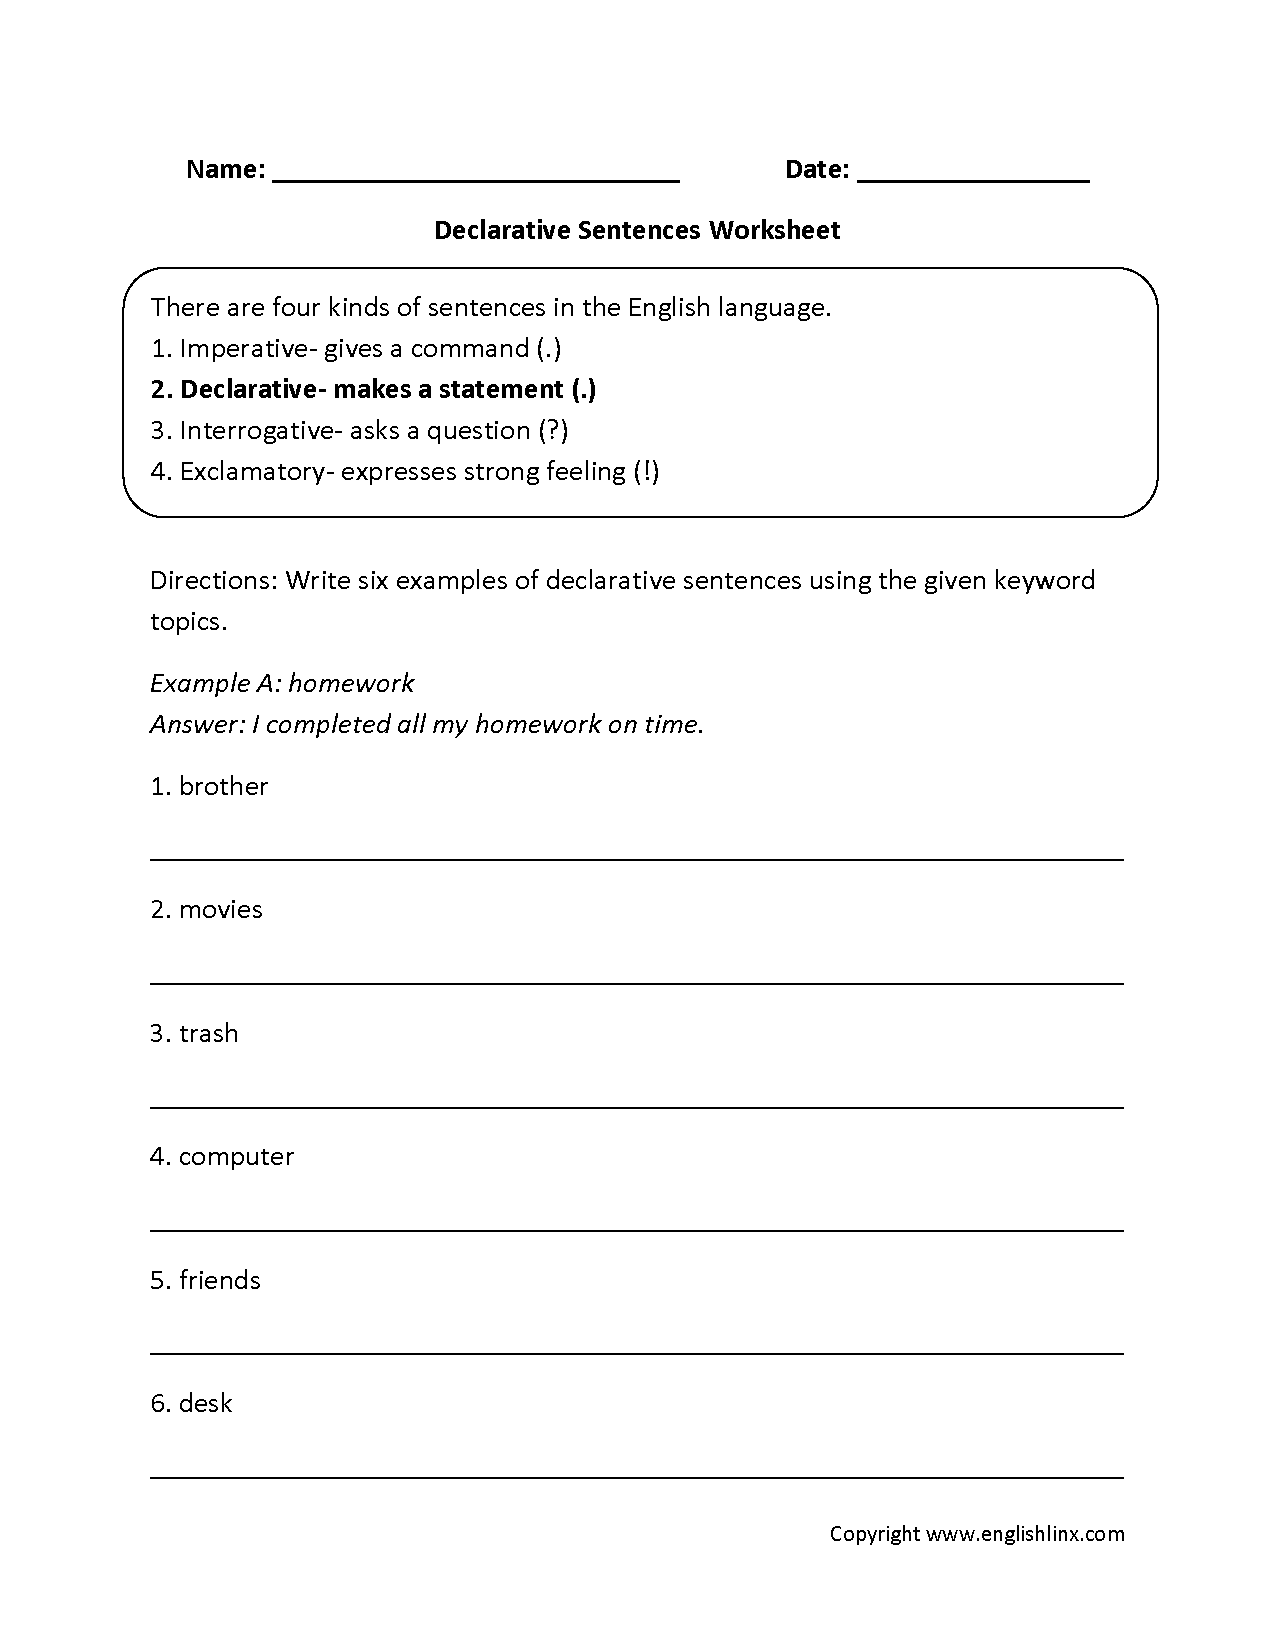 Printables Declarative And Interrogative Sentences Worksheets 4th Grade sentences worksheets types of declarative worksheets